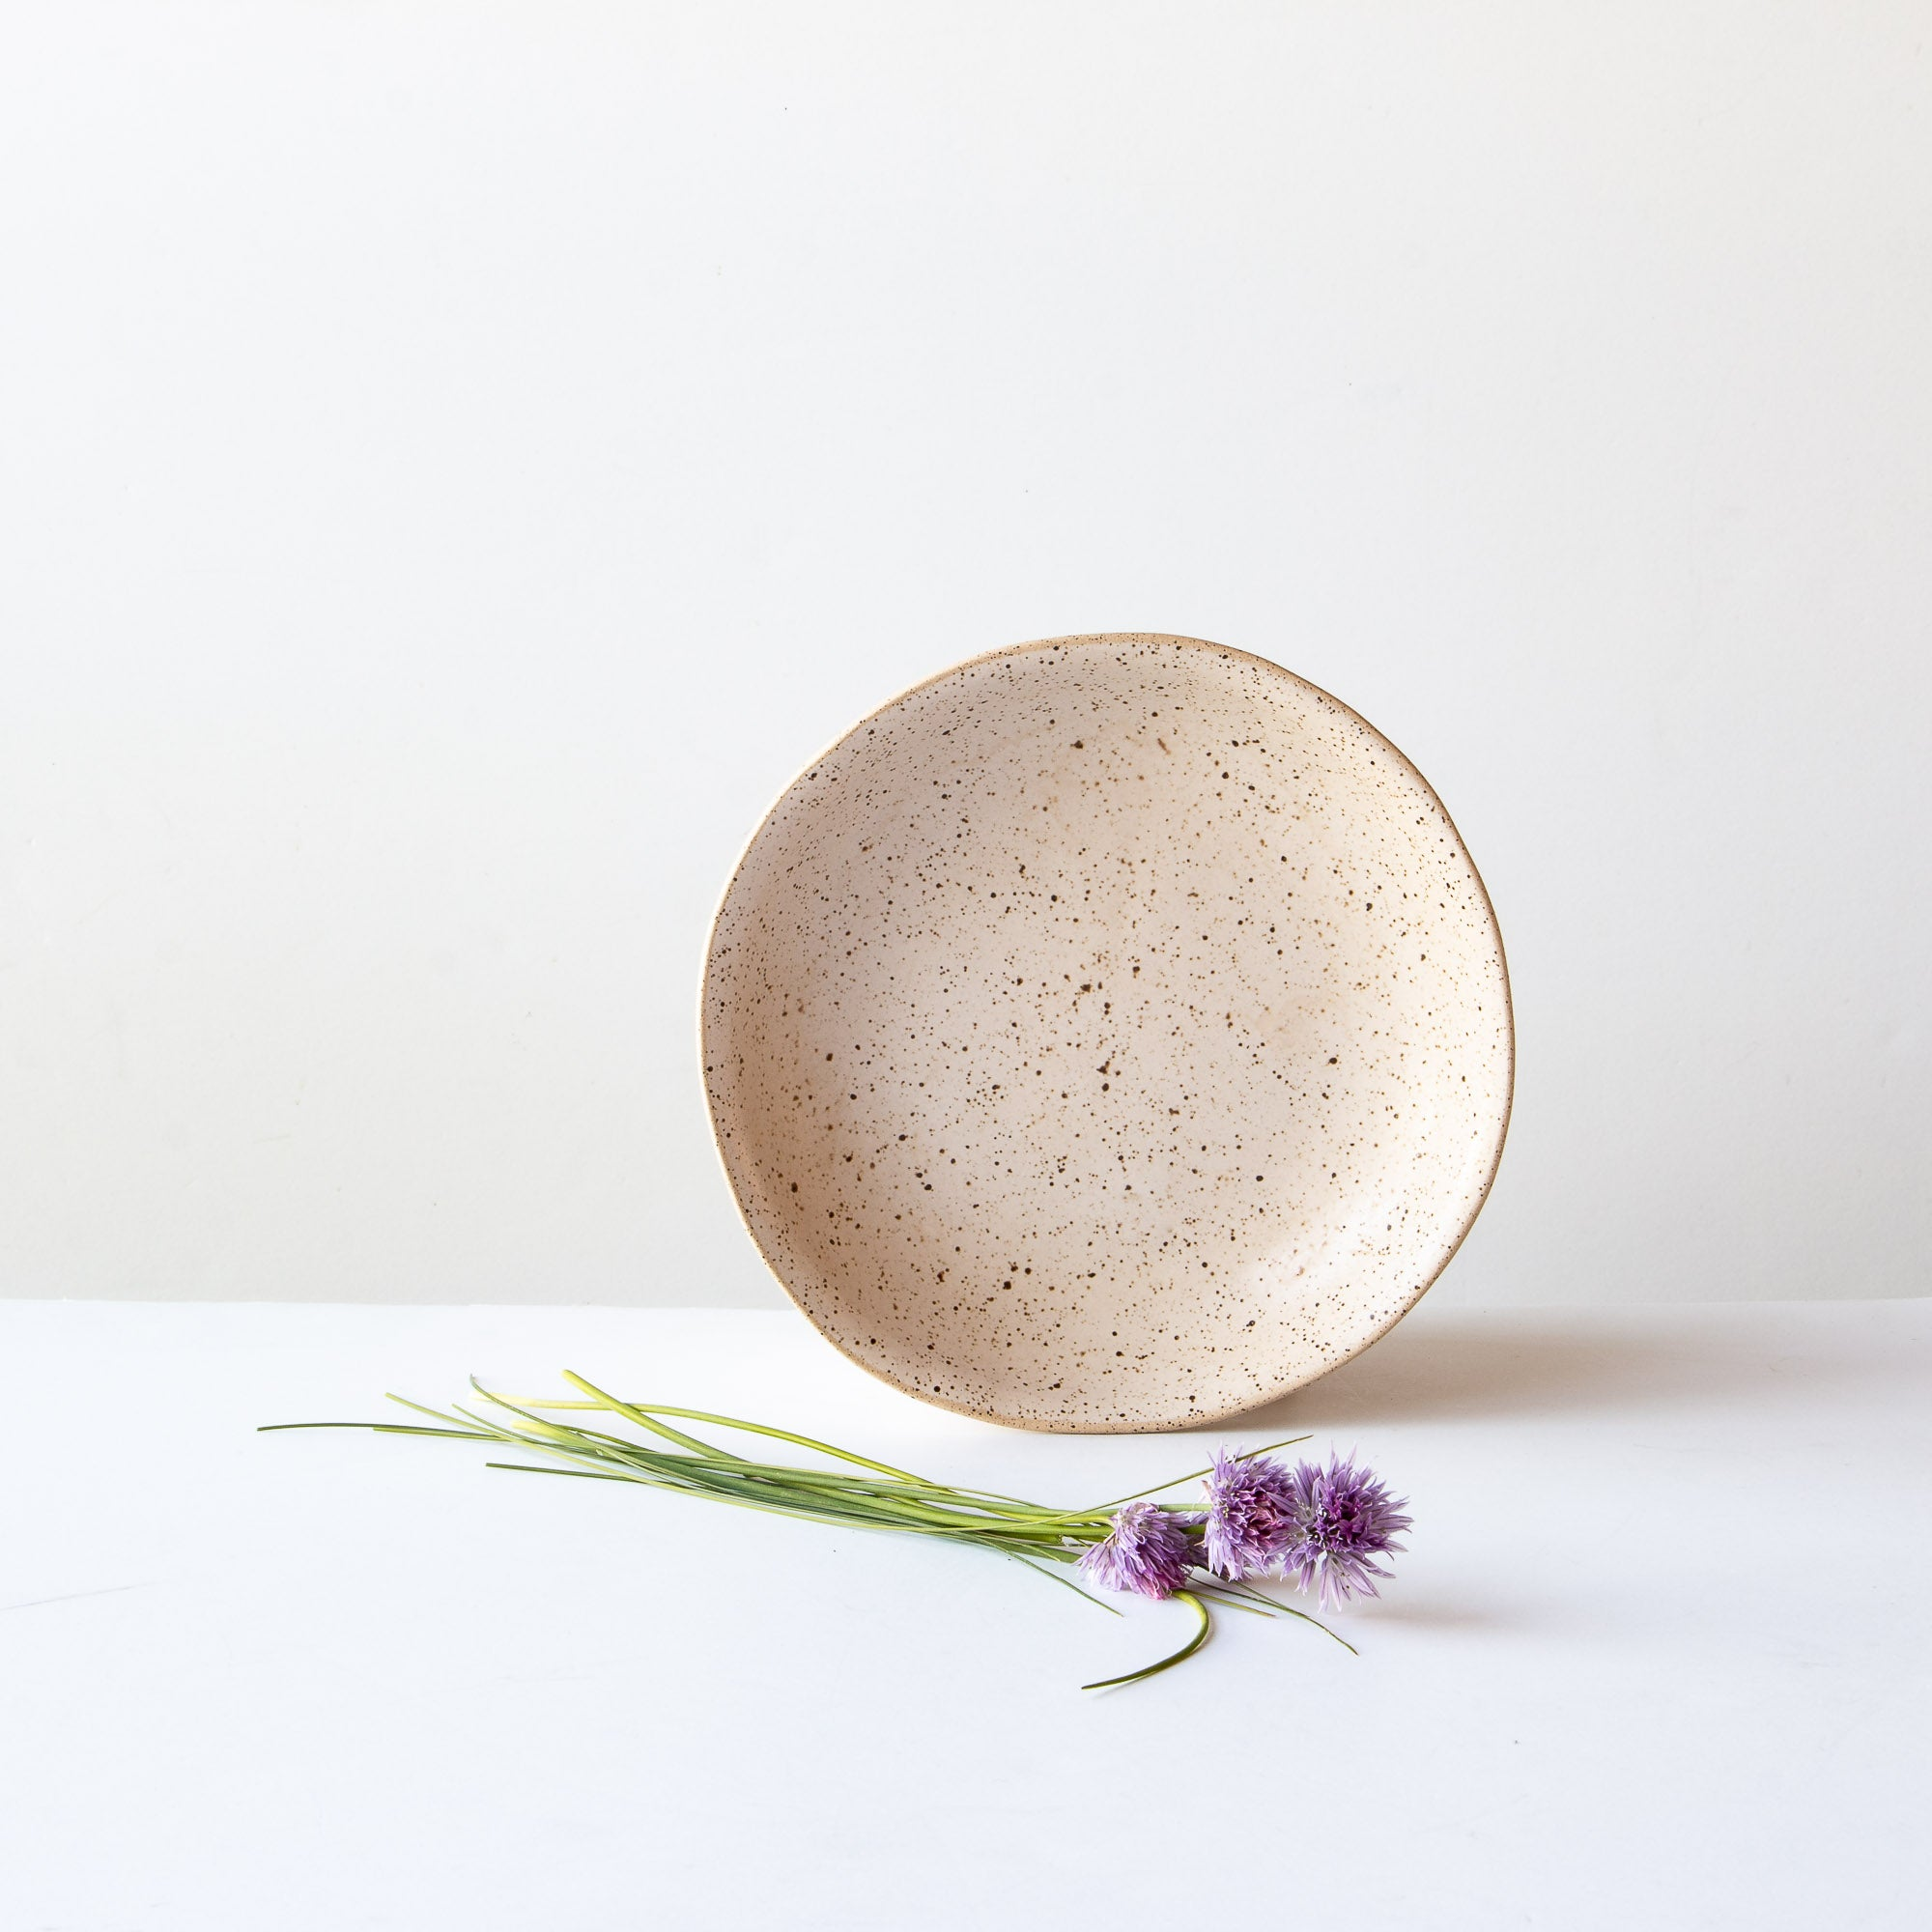 Small Freckled Pasta Bowl - Handmade in Off-White Stoneware - Sold by Chic & Basta